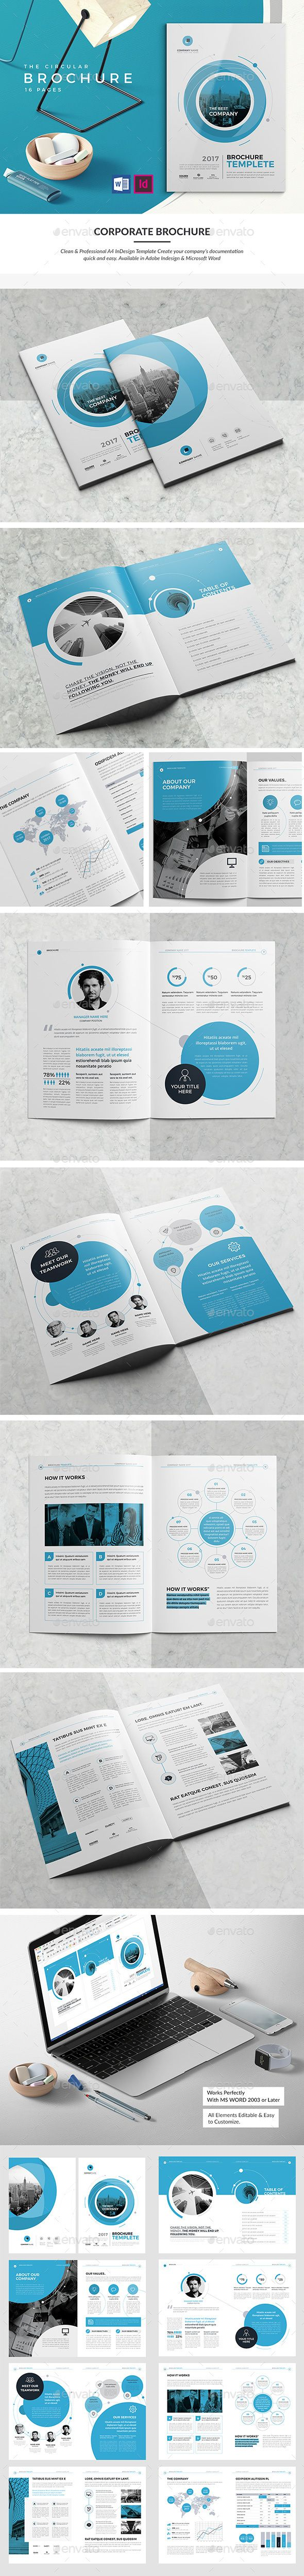 #Co #Brochure #Template 16 Pages V2 - #Corporate #Business #Brochures #Design. Download here: https://graphicriver.net/item/co-brochure-16-pages-v2/19834872?ref=yinkira